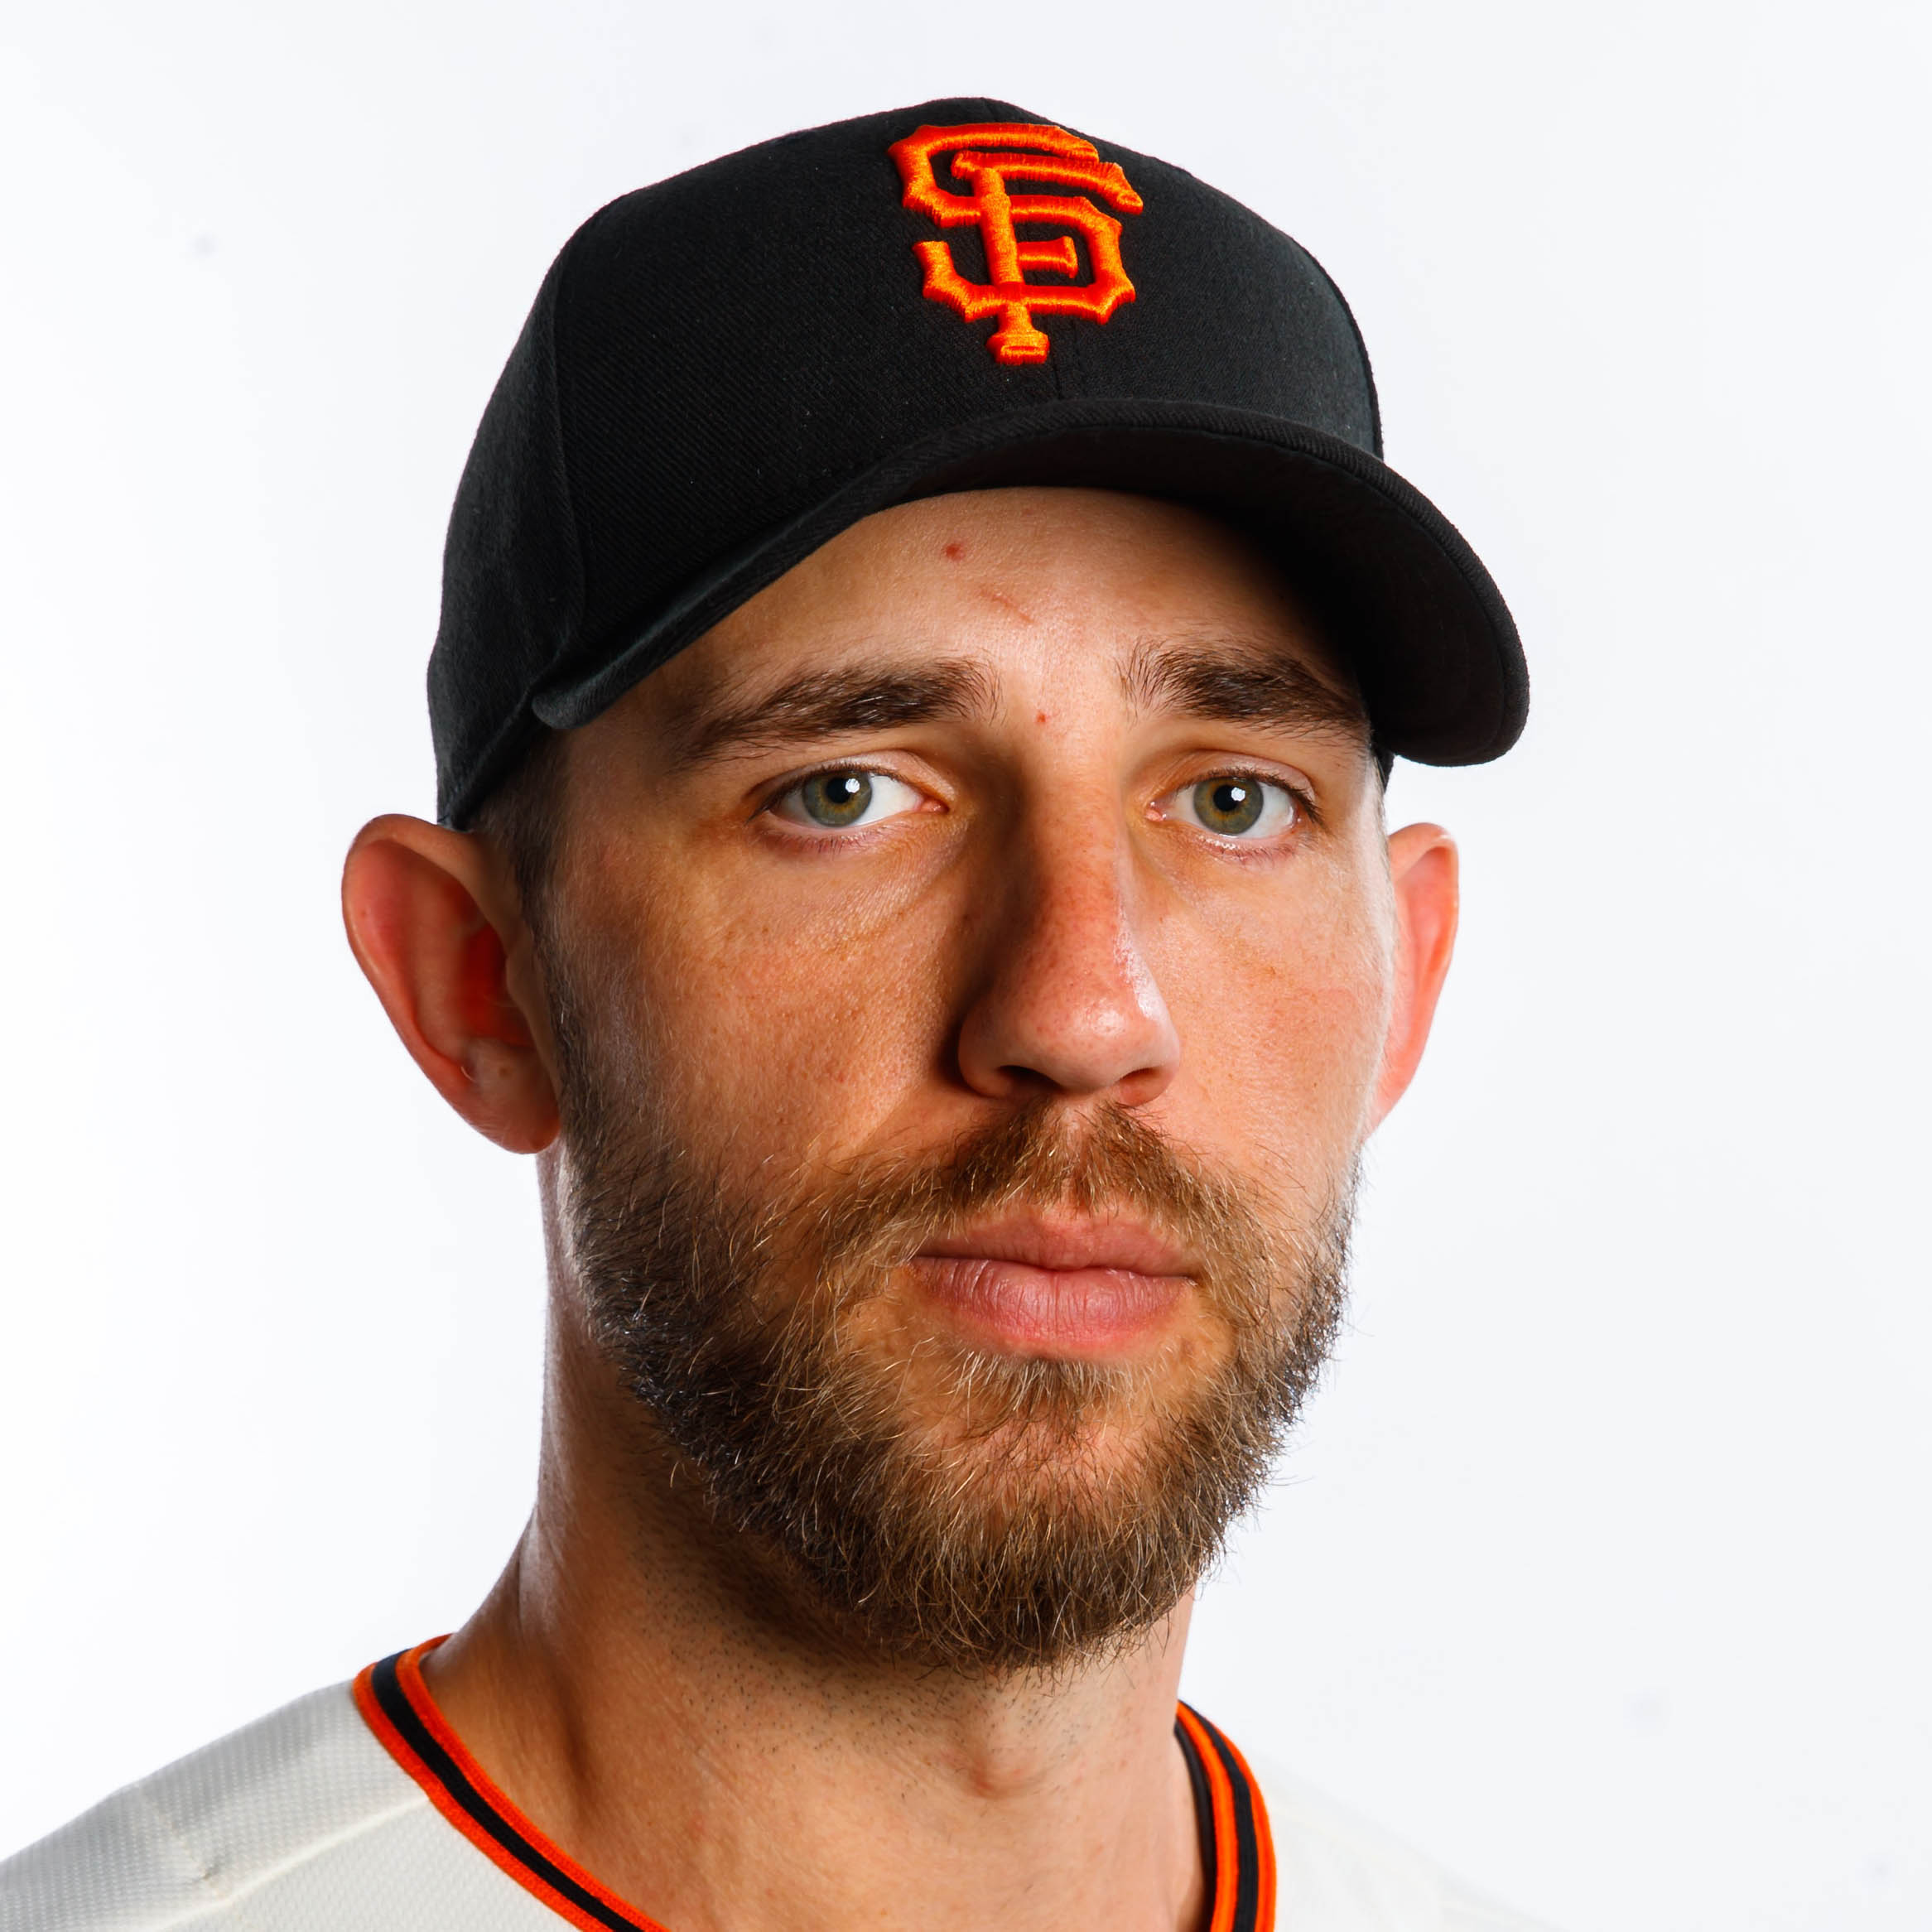 Madison Bumgarner (L) Headshot